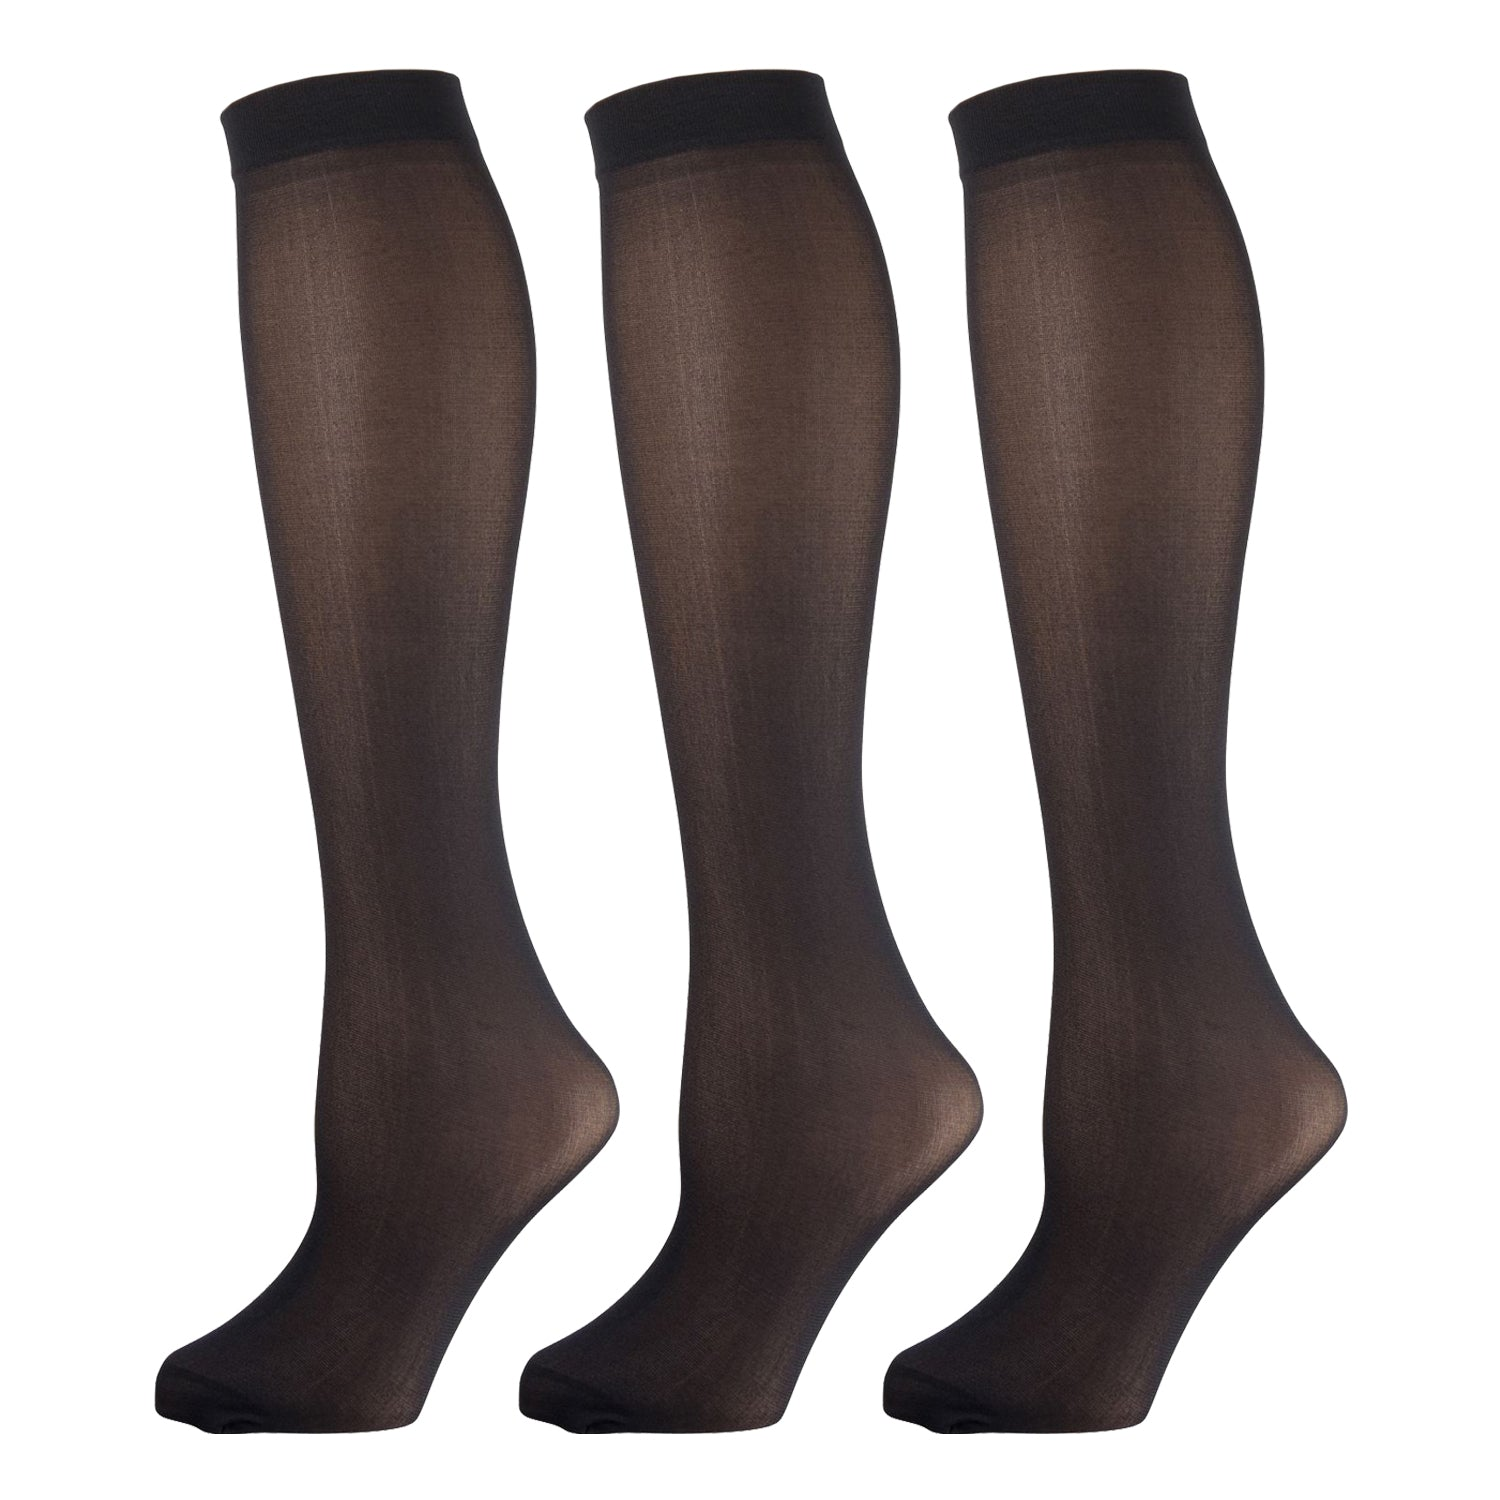 Black Opaque Knee High Trouser Socks 3 Pairs